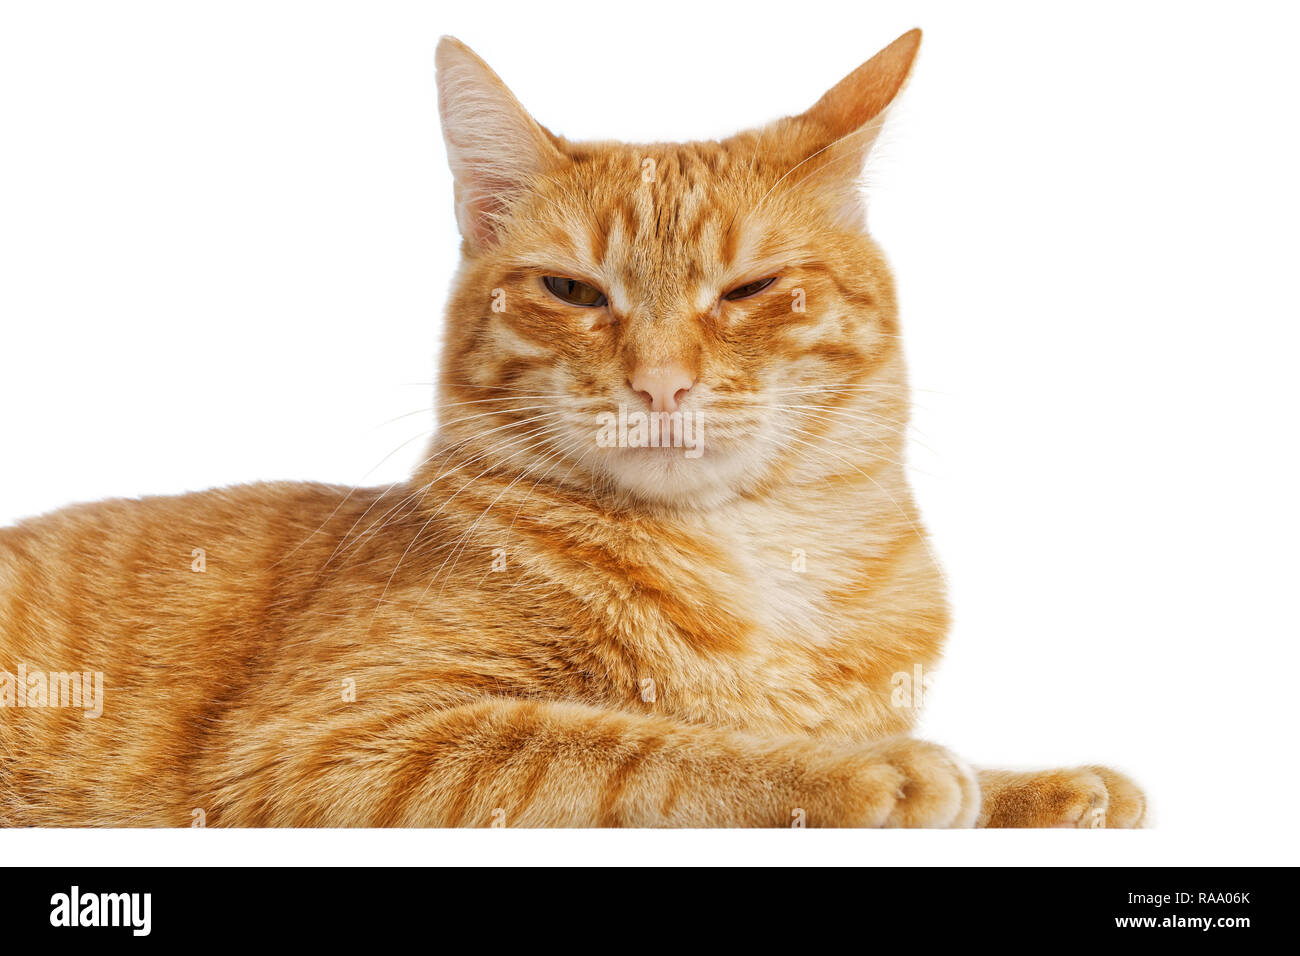 Portrait of a red cat with a cunning squinting glance isolated on white - Stock Image